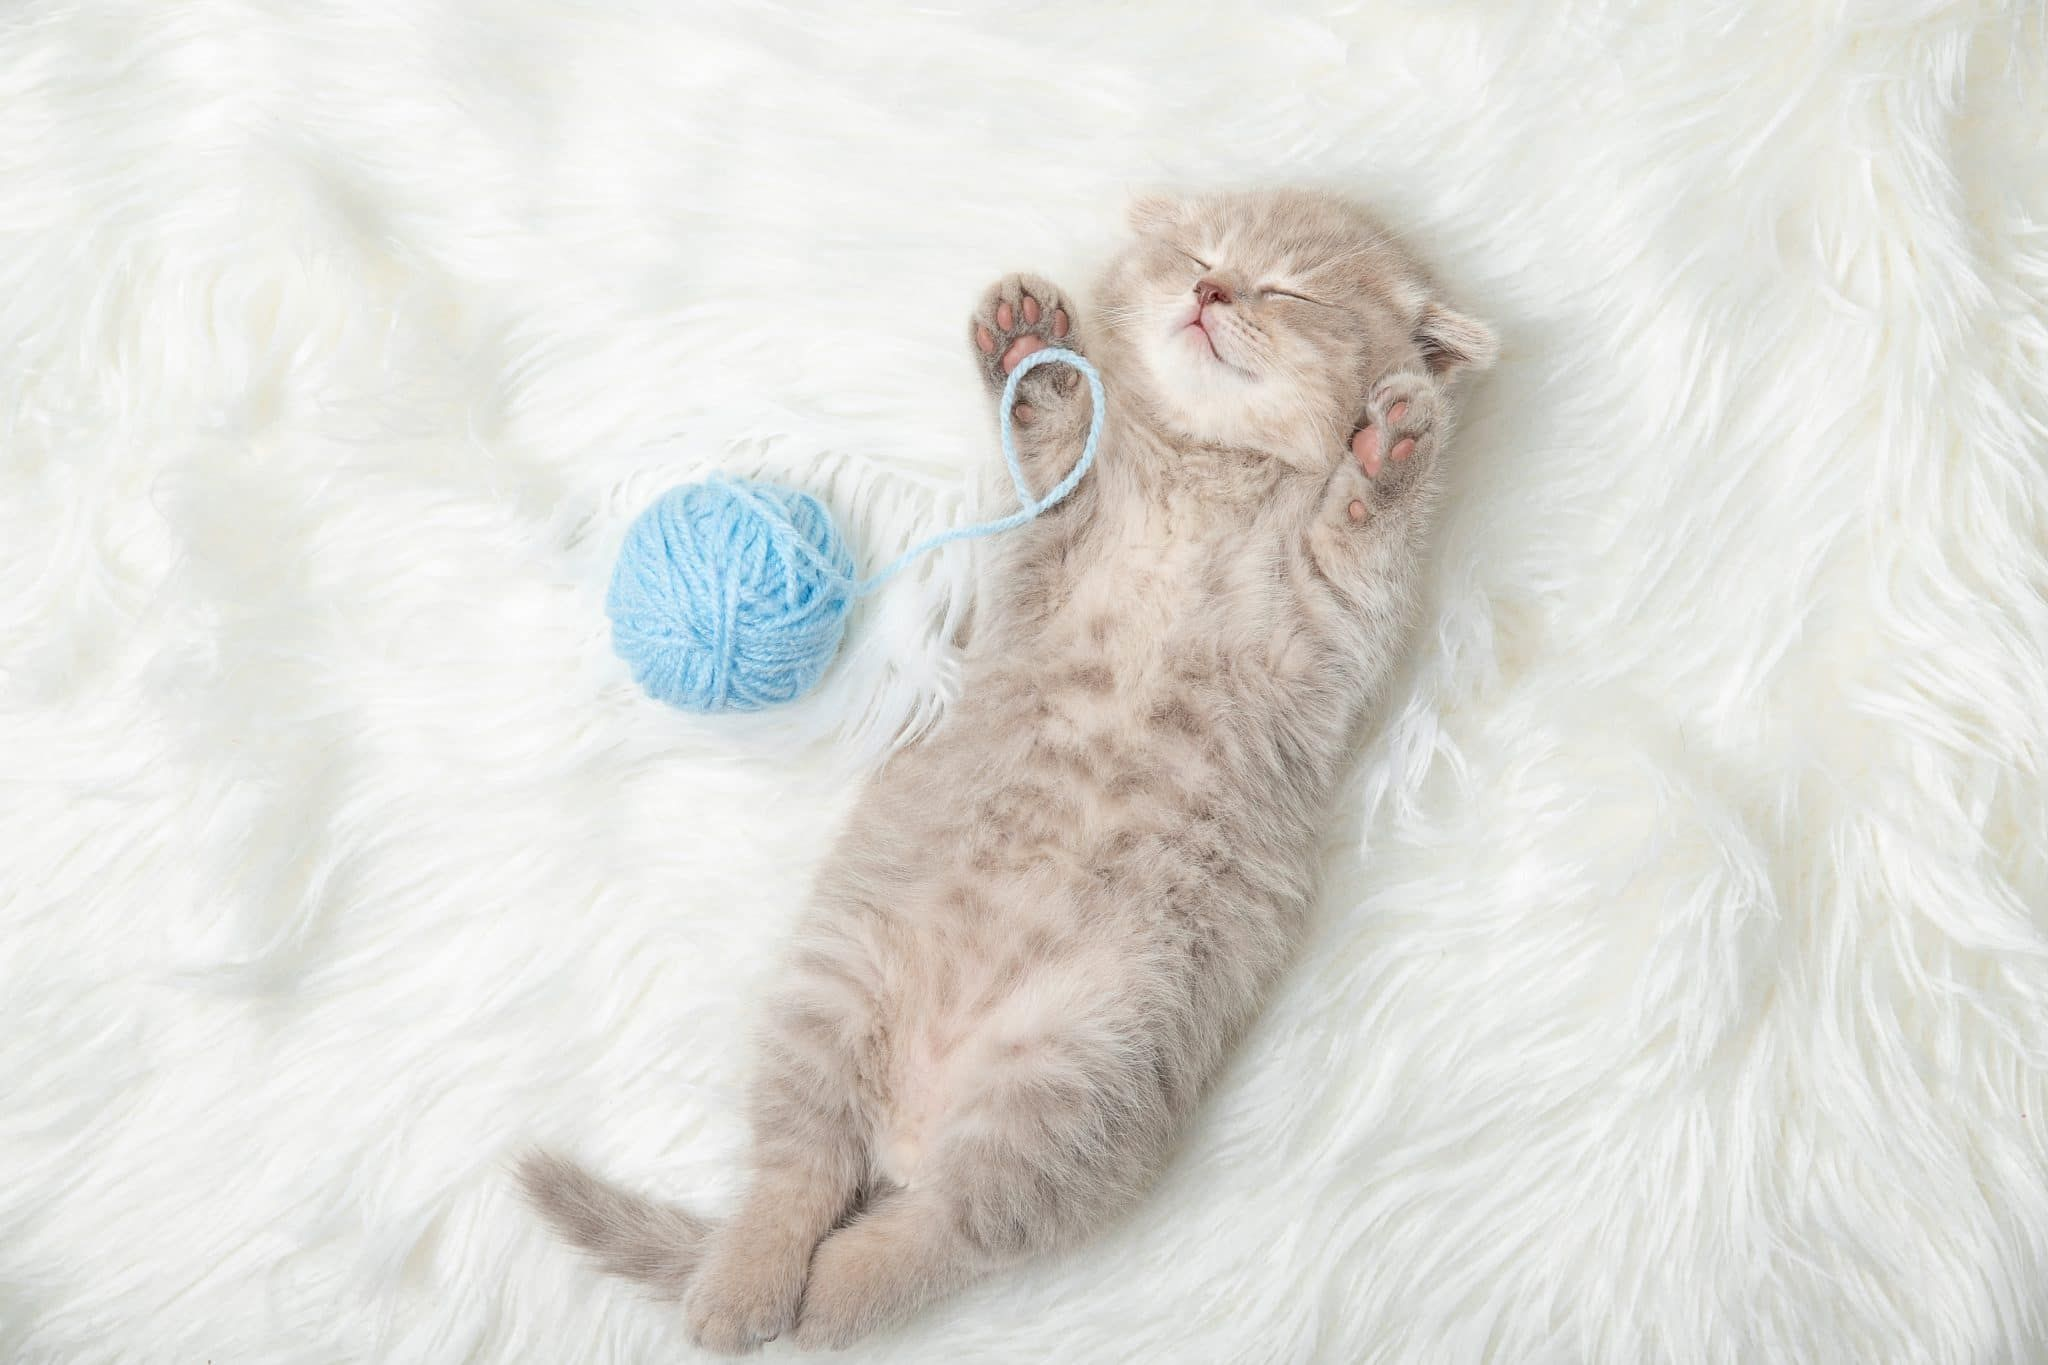 Kittens Sleep Together In Their Own Bed The Dodo Youtube This Is So Stinkin Cute No Wonder So Many People Love Ca Sleeping Kitten Kittens Cat Sleeping